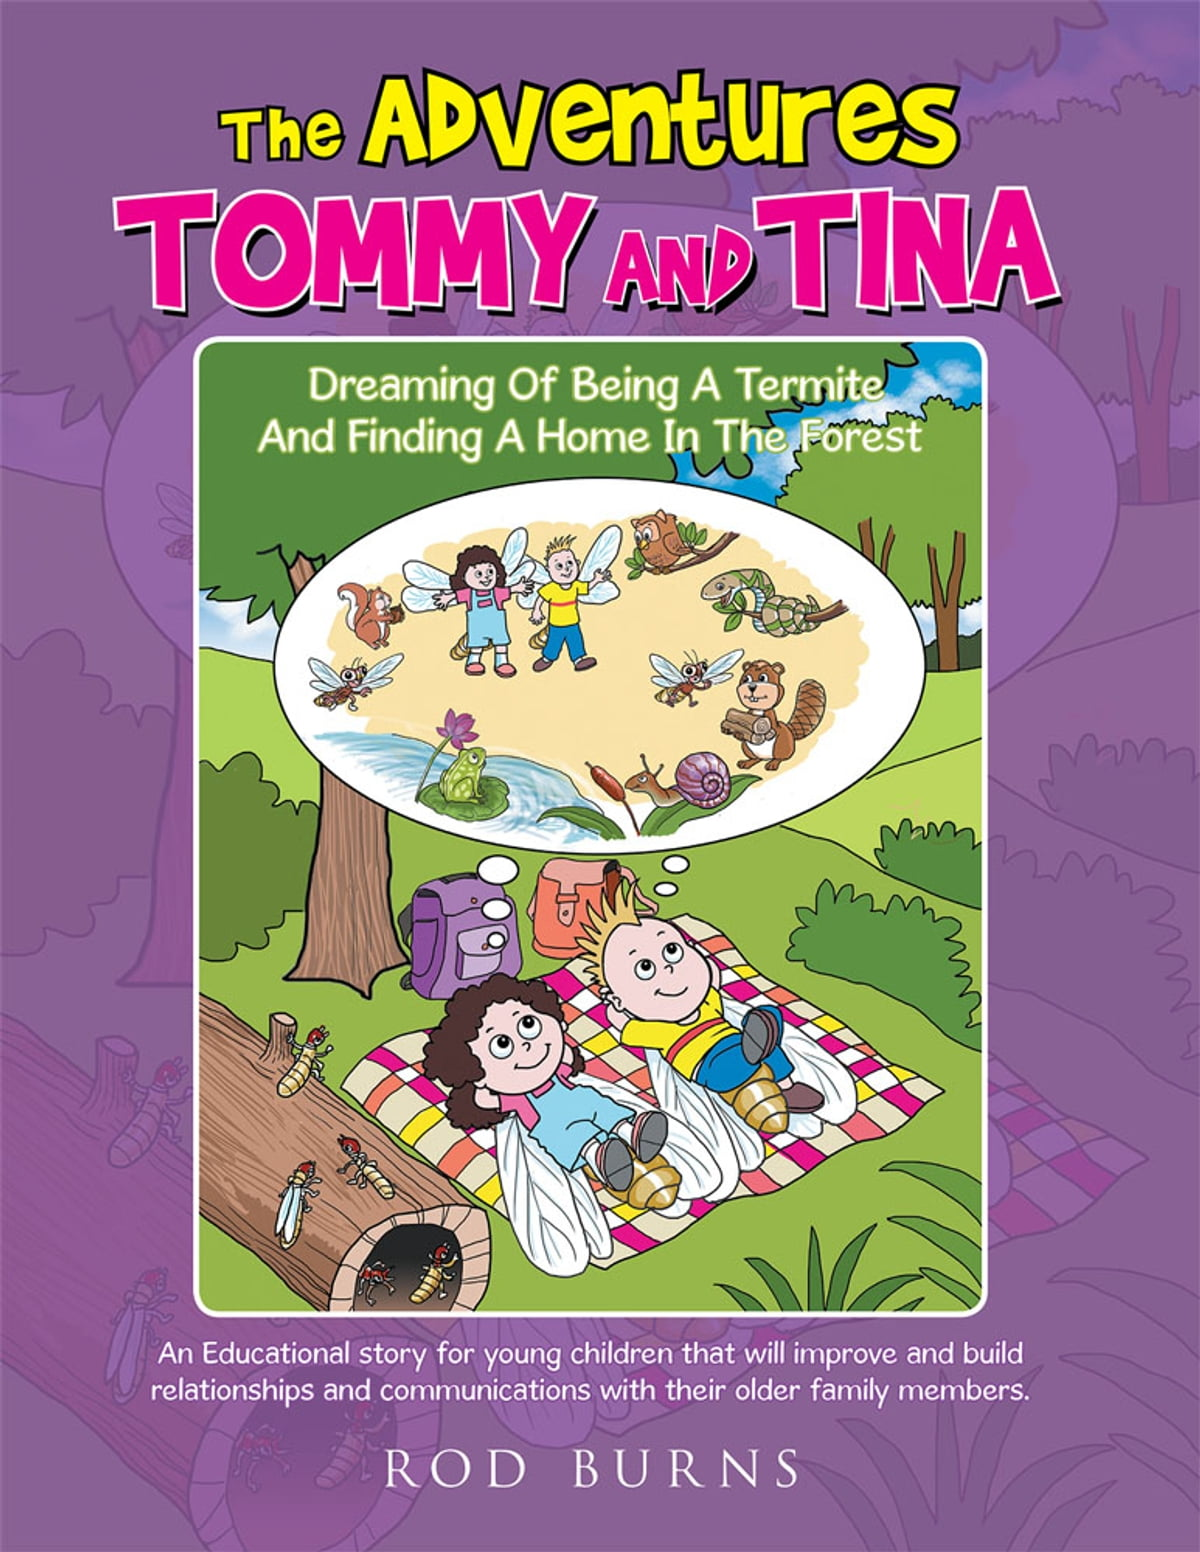 The Adventures Of Tommy And Tina Dreaming Of Being A Termite And Finding A  Home In The Forest Ebook By Rod Burns  9781503591691  Rakuten Kobo